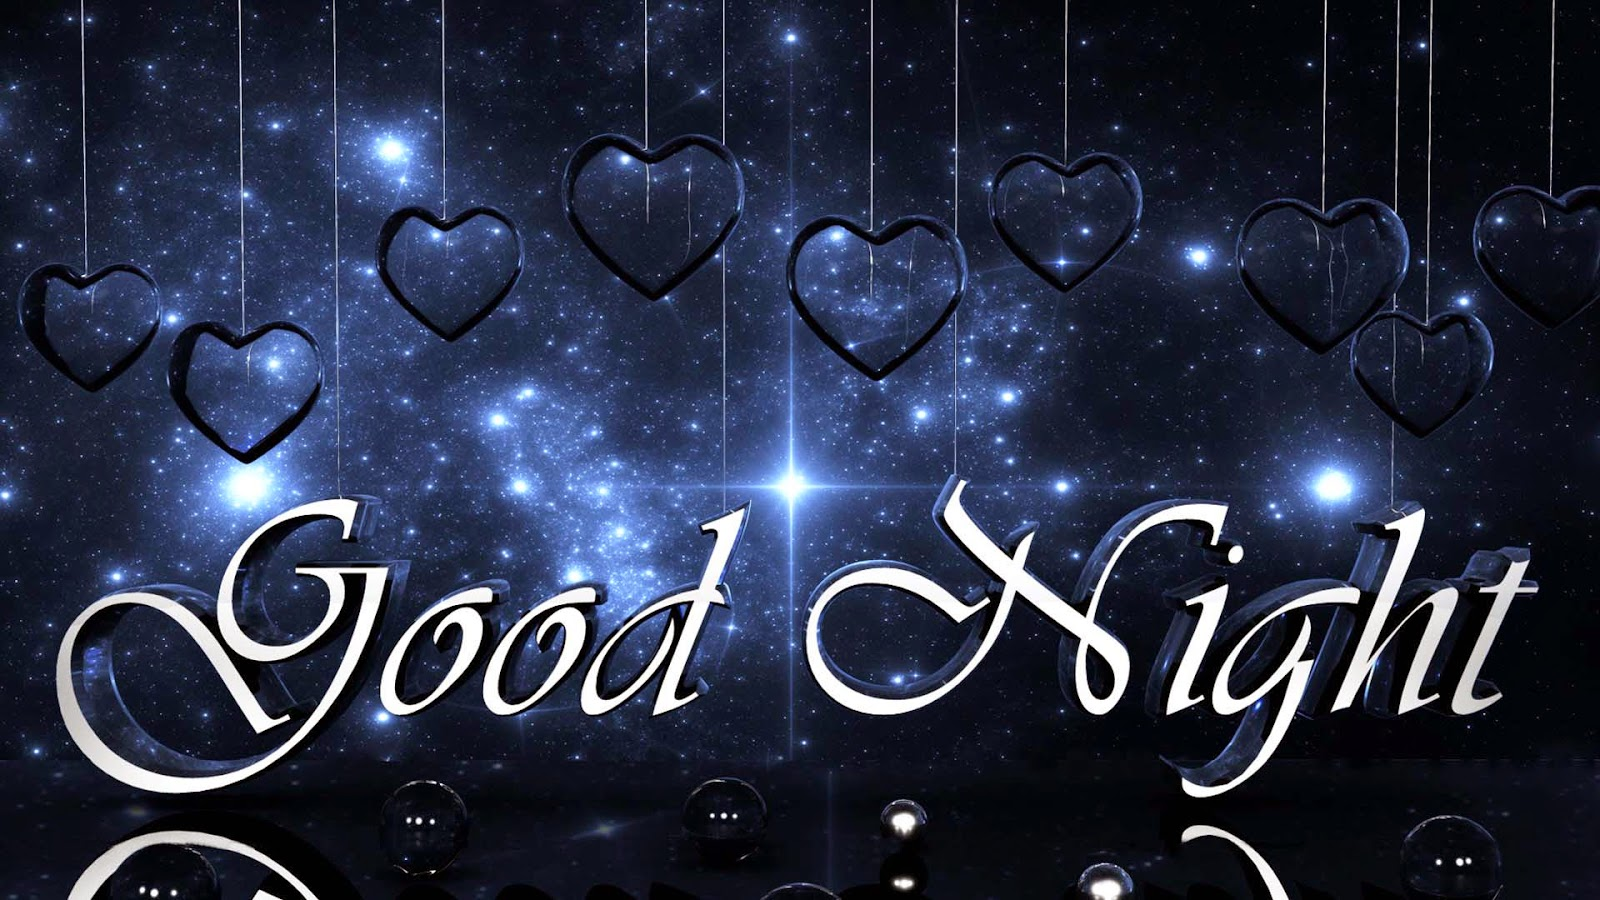 good night wallpapers high quality | download free